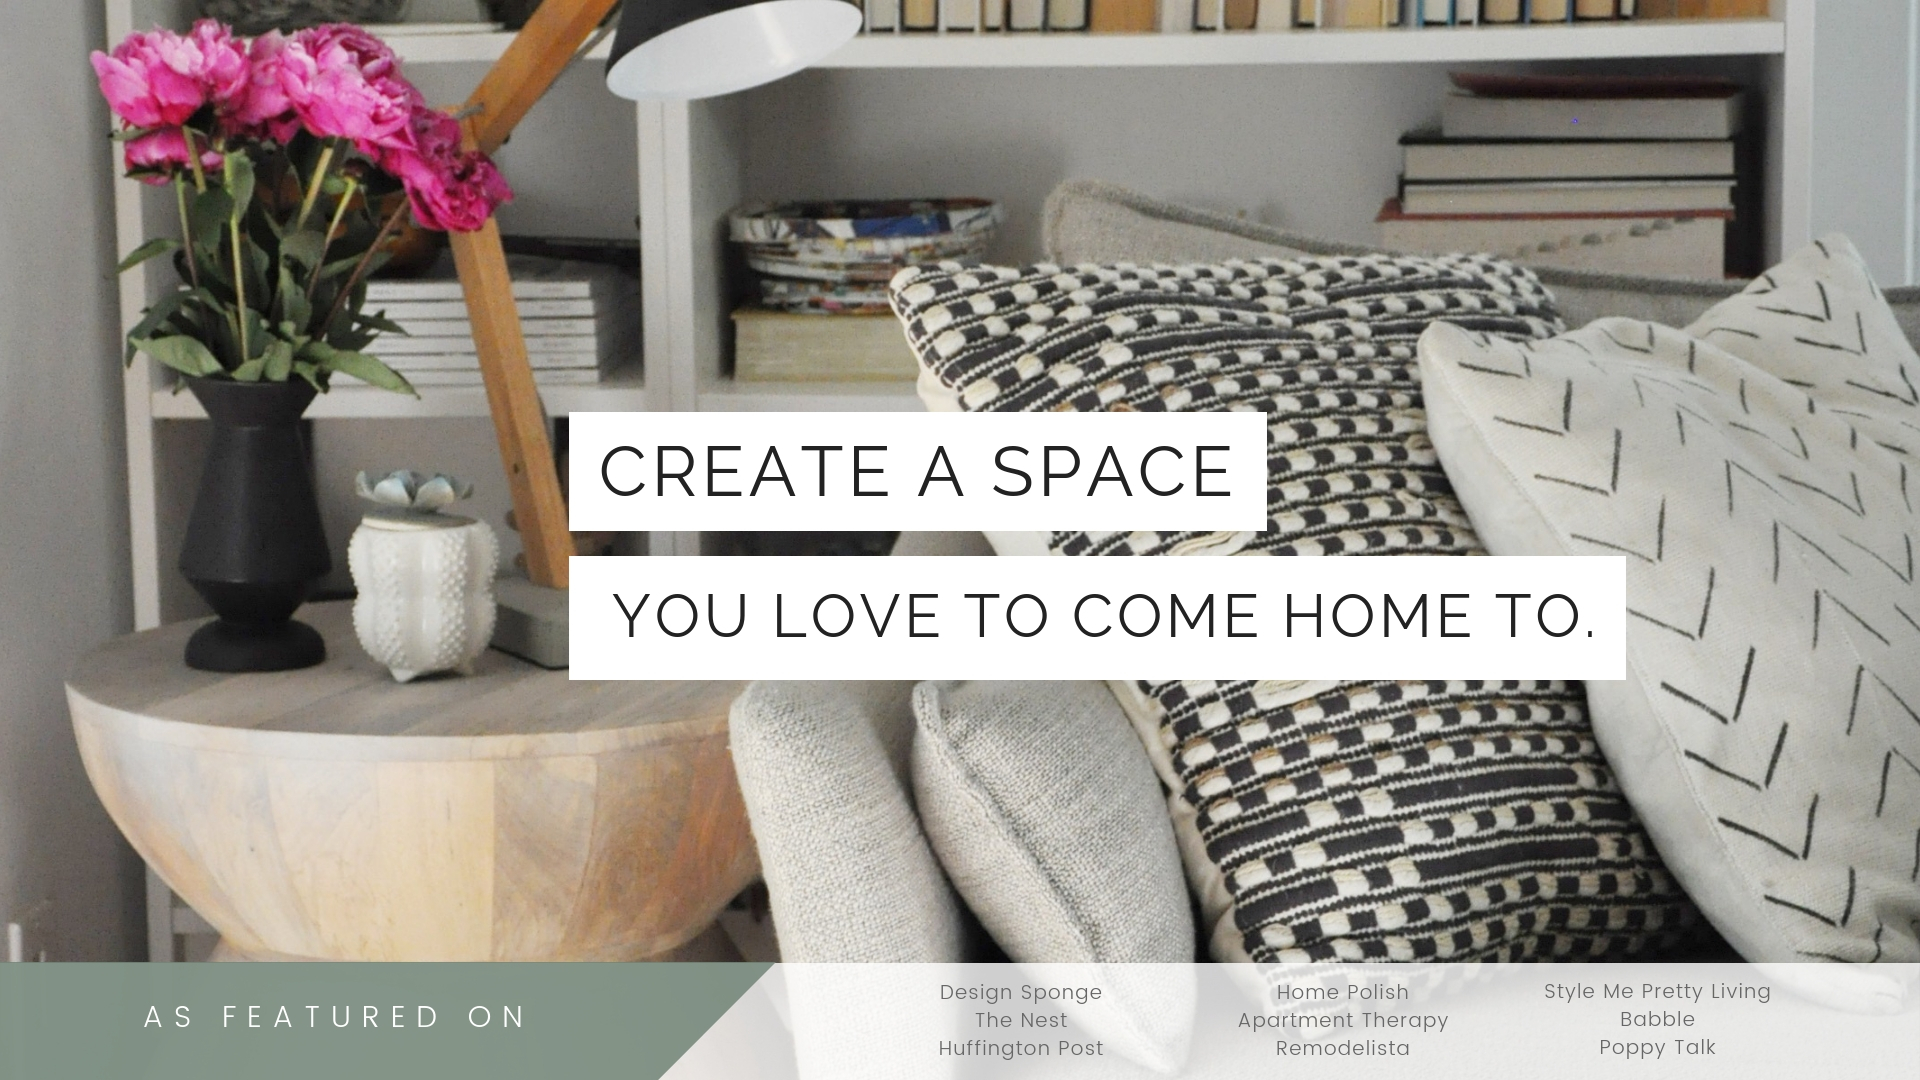 Create-a-space-you-love-to-come-home-to.jpg